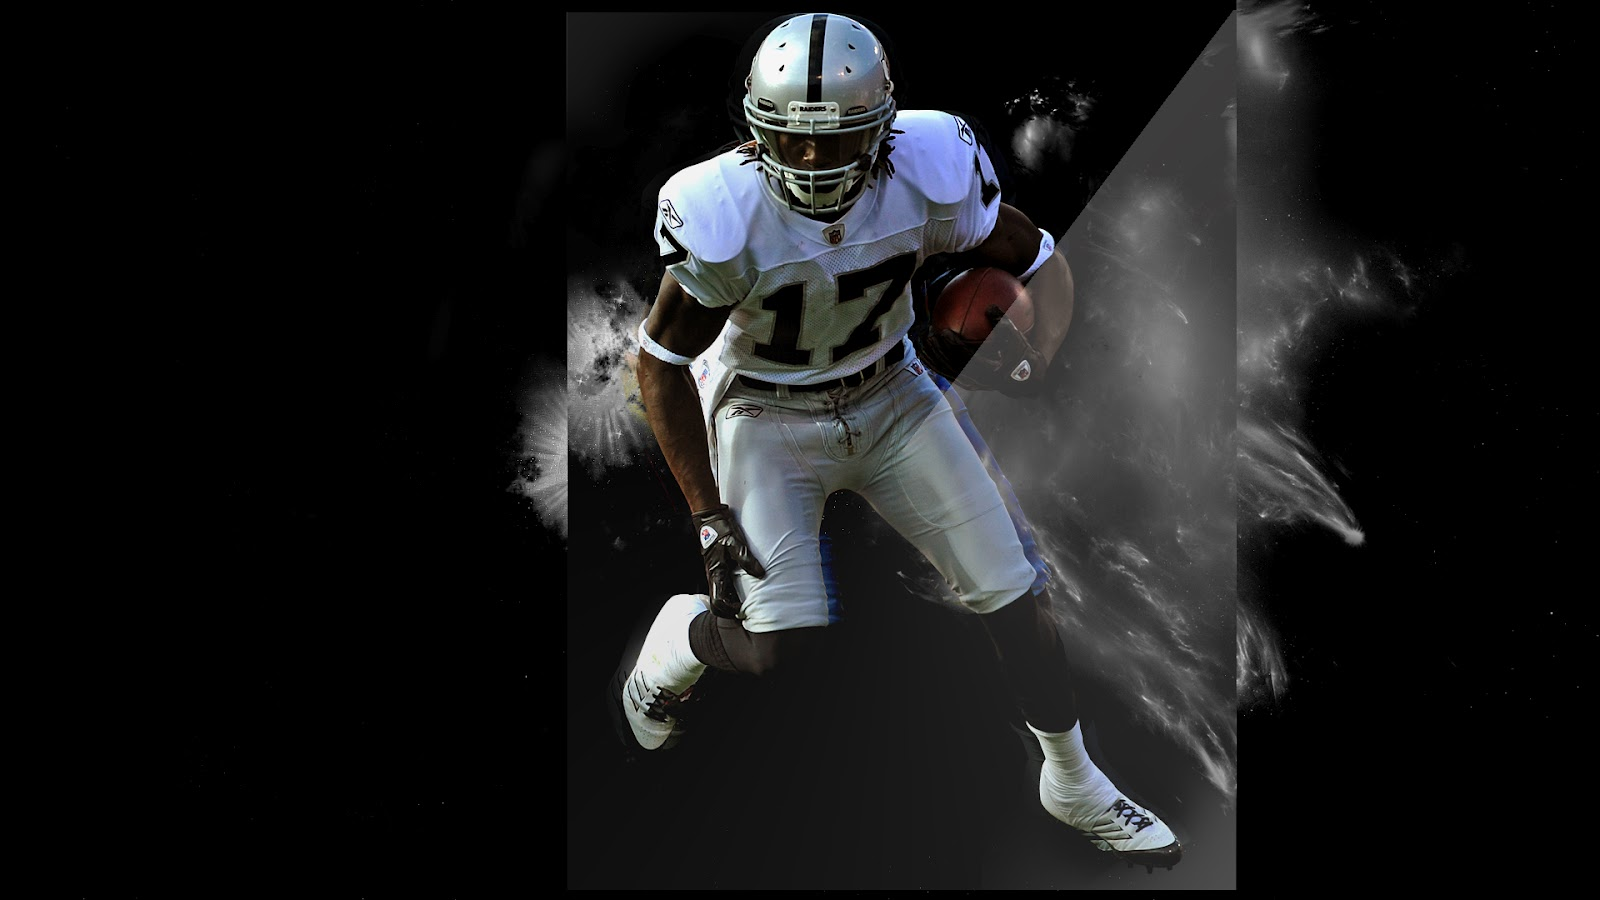 Darren Dalton HD Wallpapers Denarius Moore Oakland Raiders HD Quality NFL Wallpaper